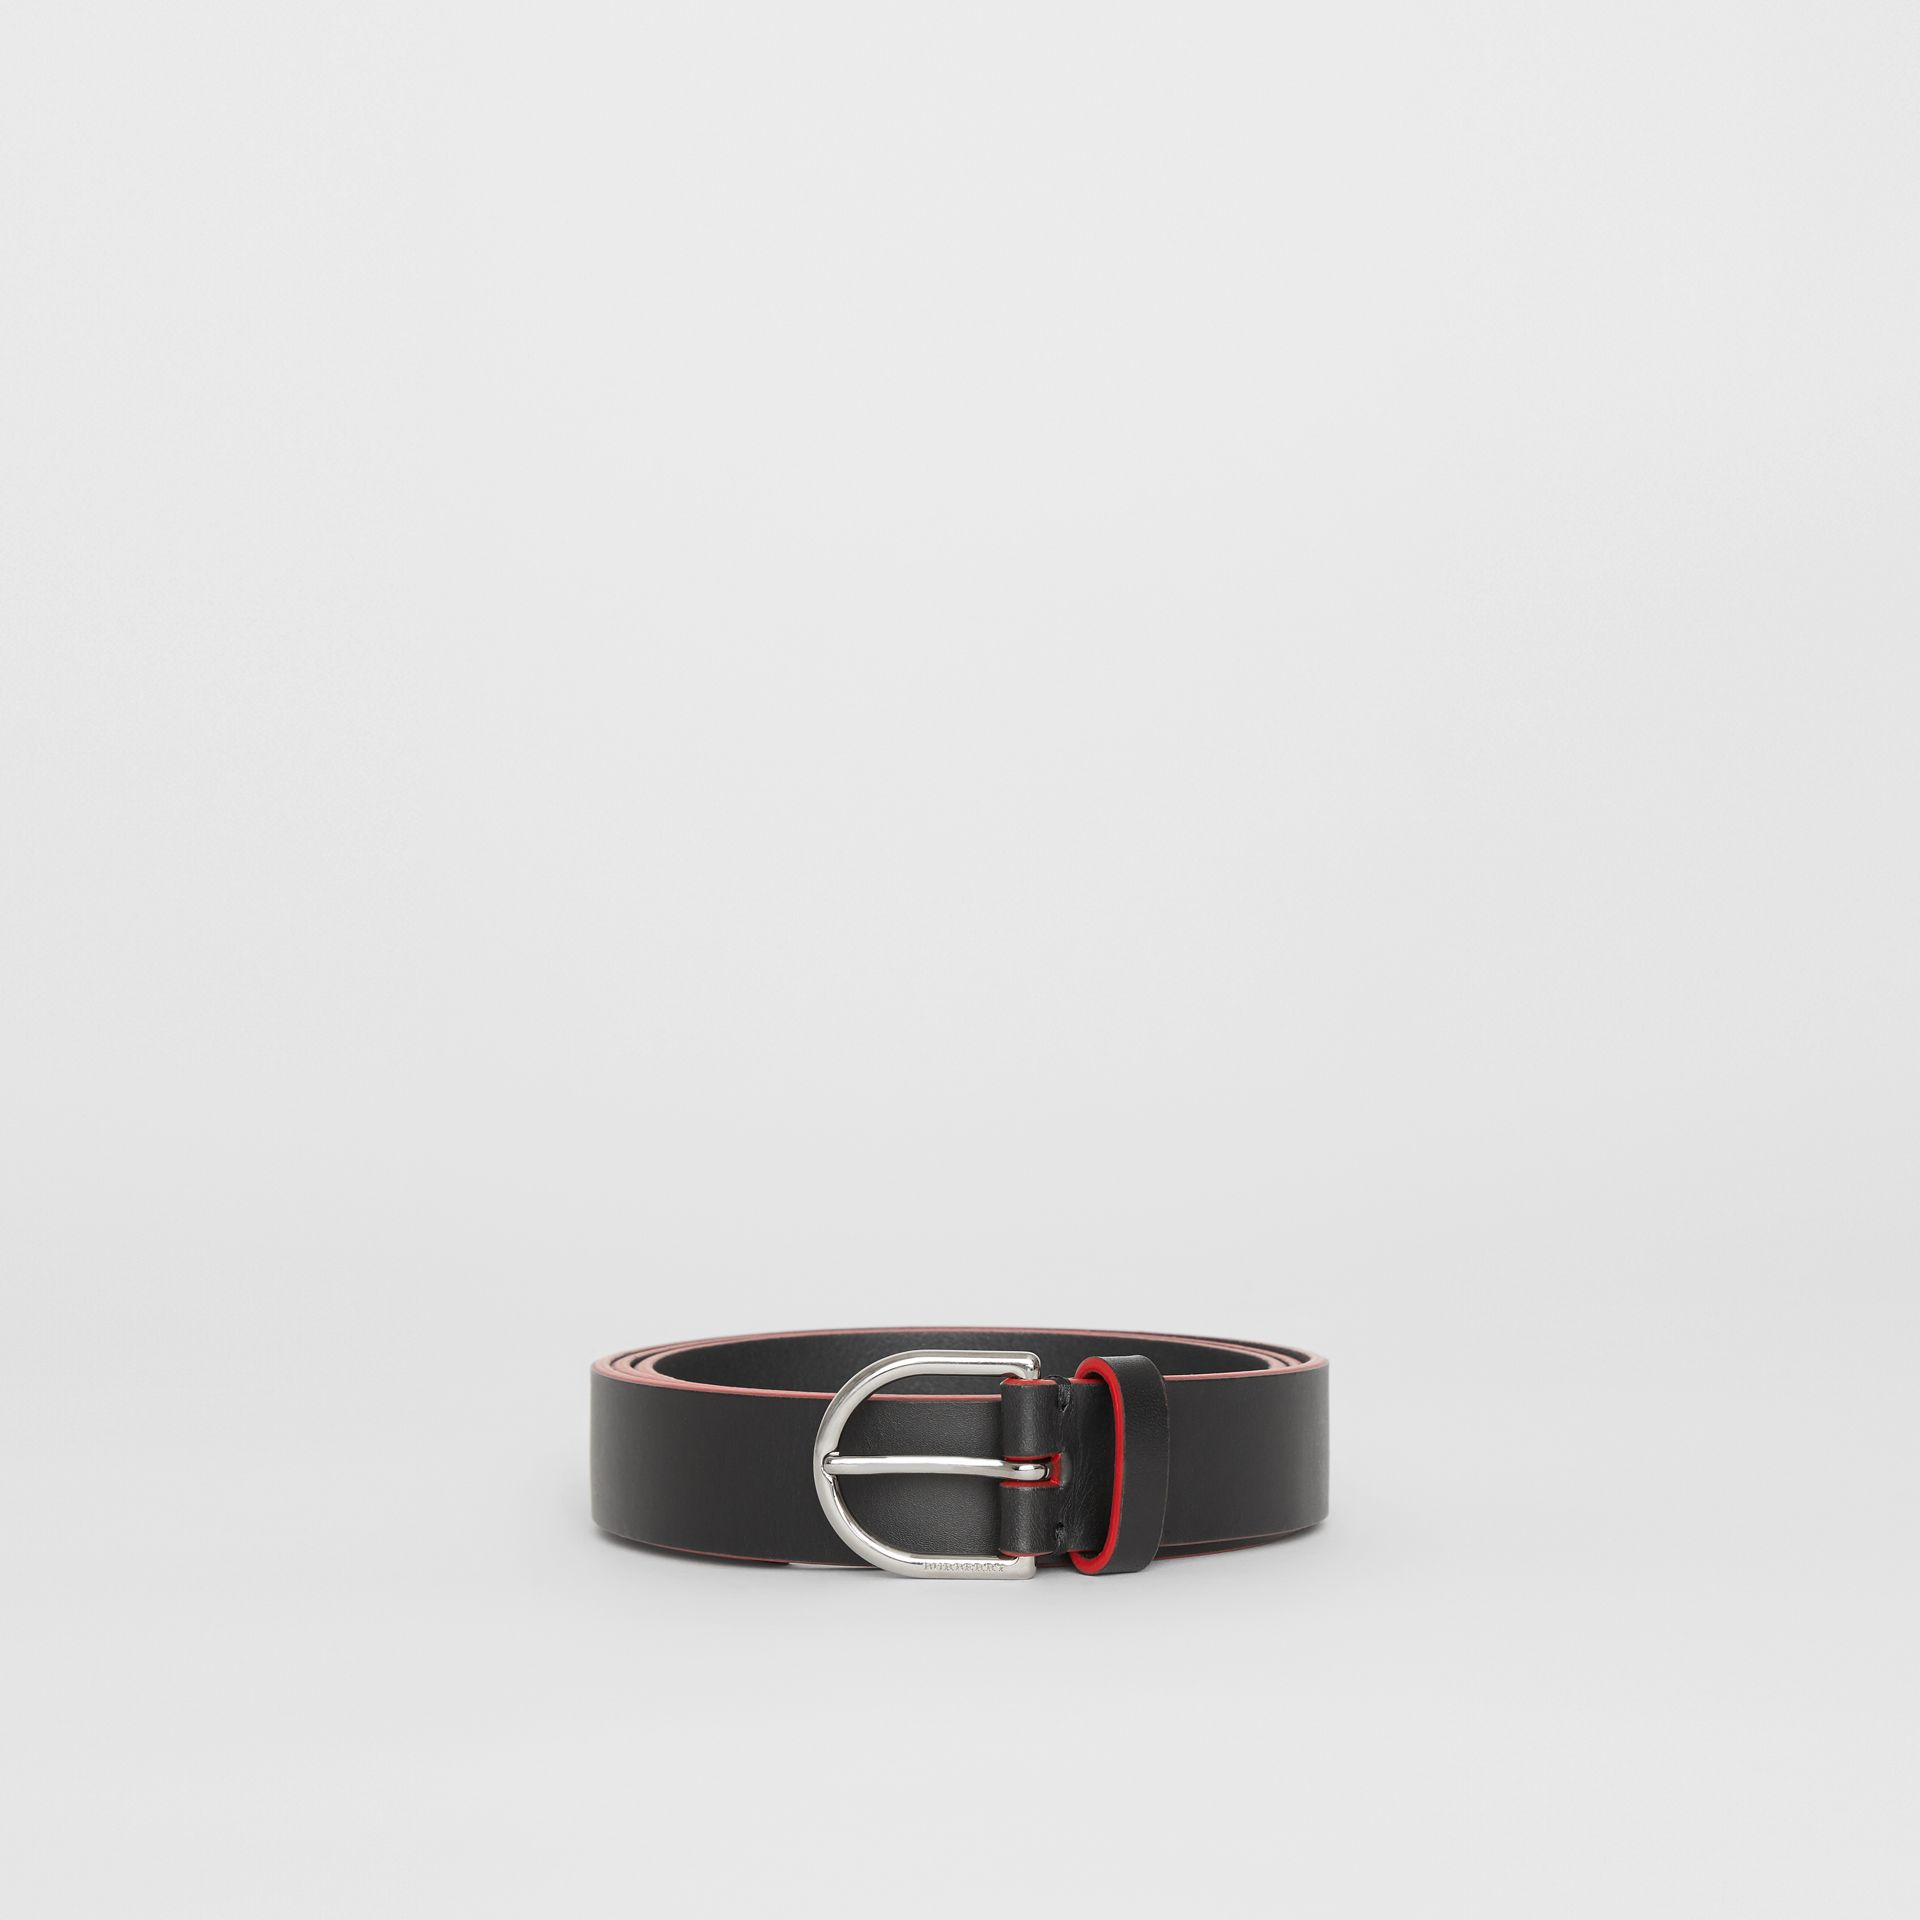 Contrast Edge Leather D-ring Belt in Black/red - Men | Burberry United States - gallery image 3